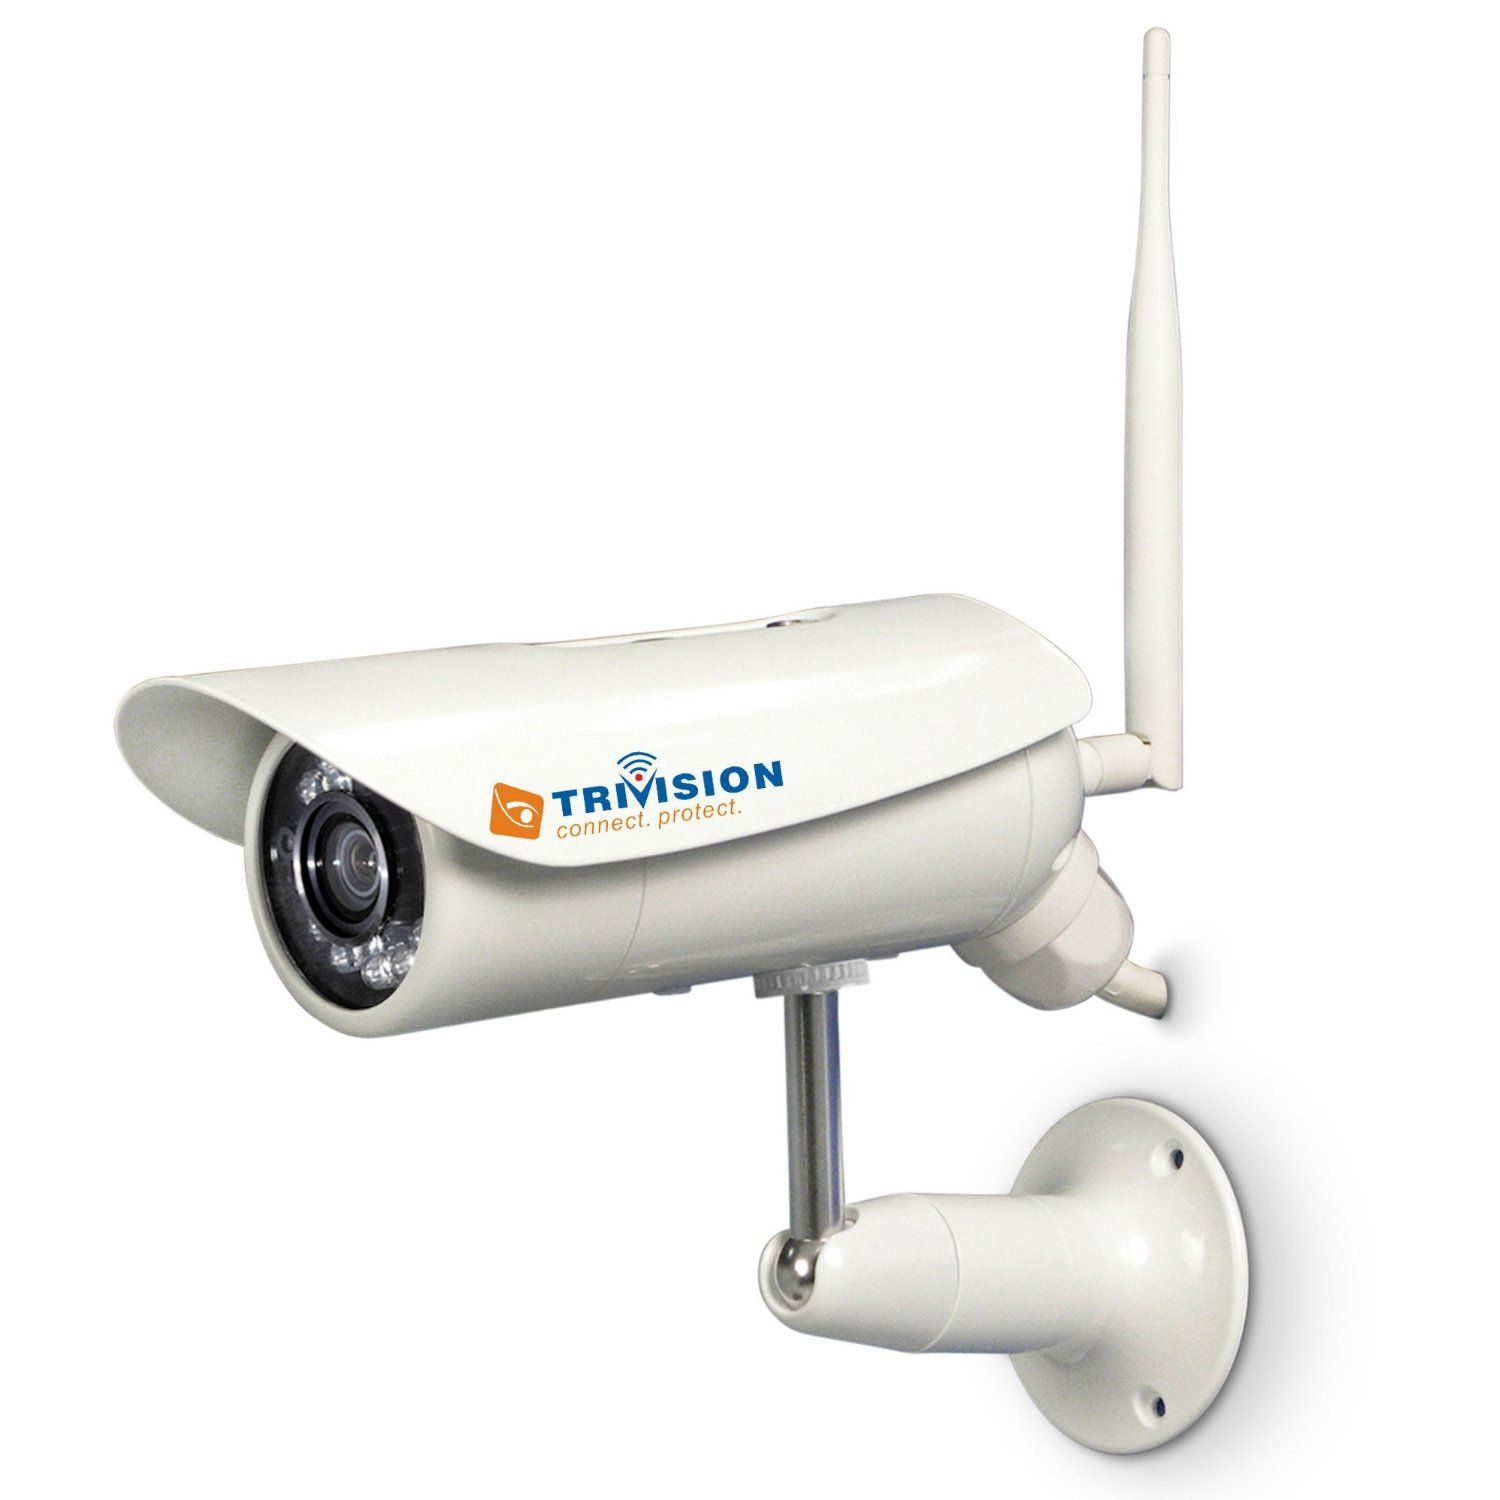 Amazon.com : TriVision NC-336PW HD 1080P Wireless Outdoor Home ...